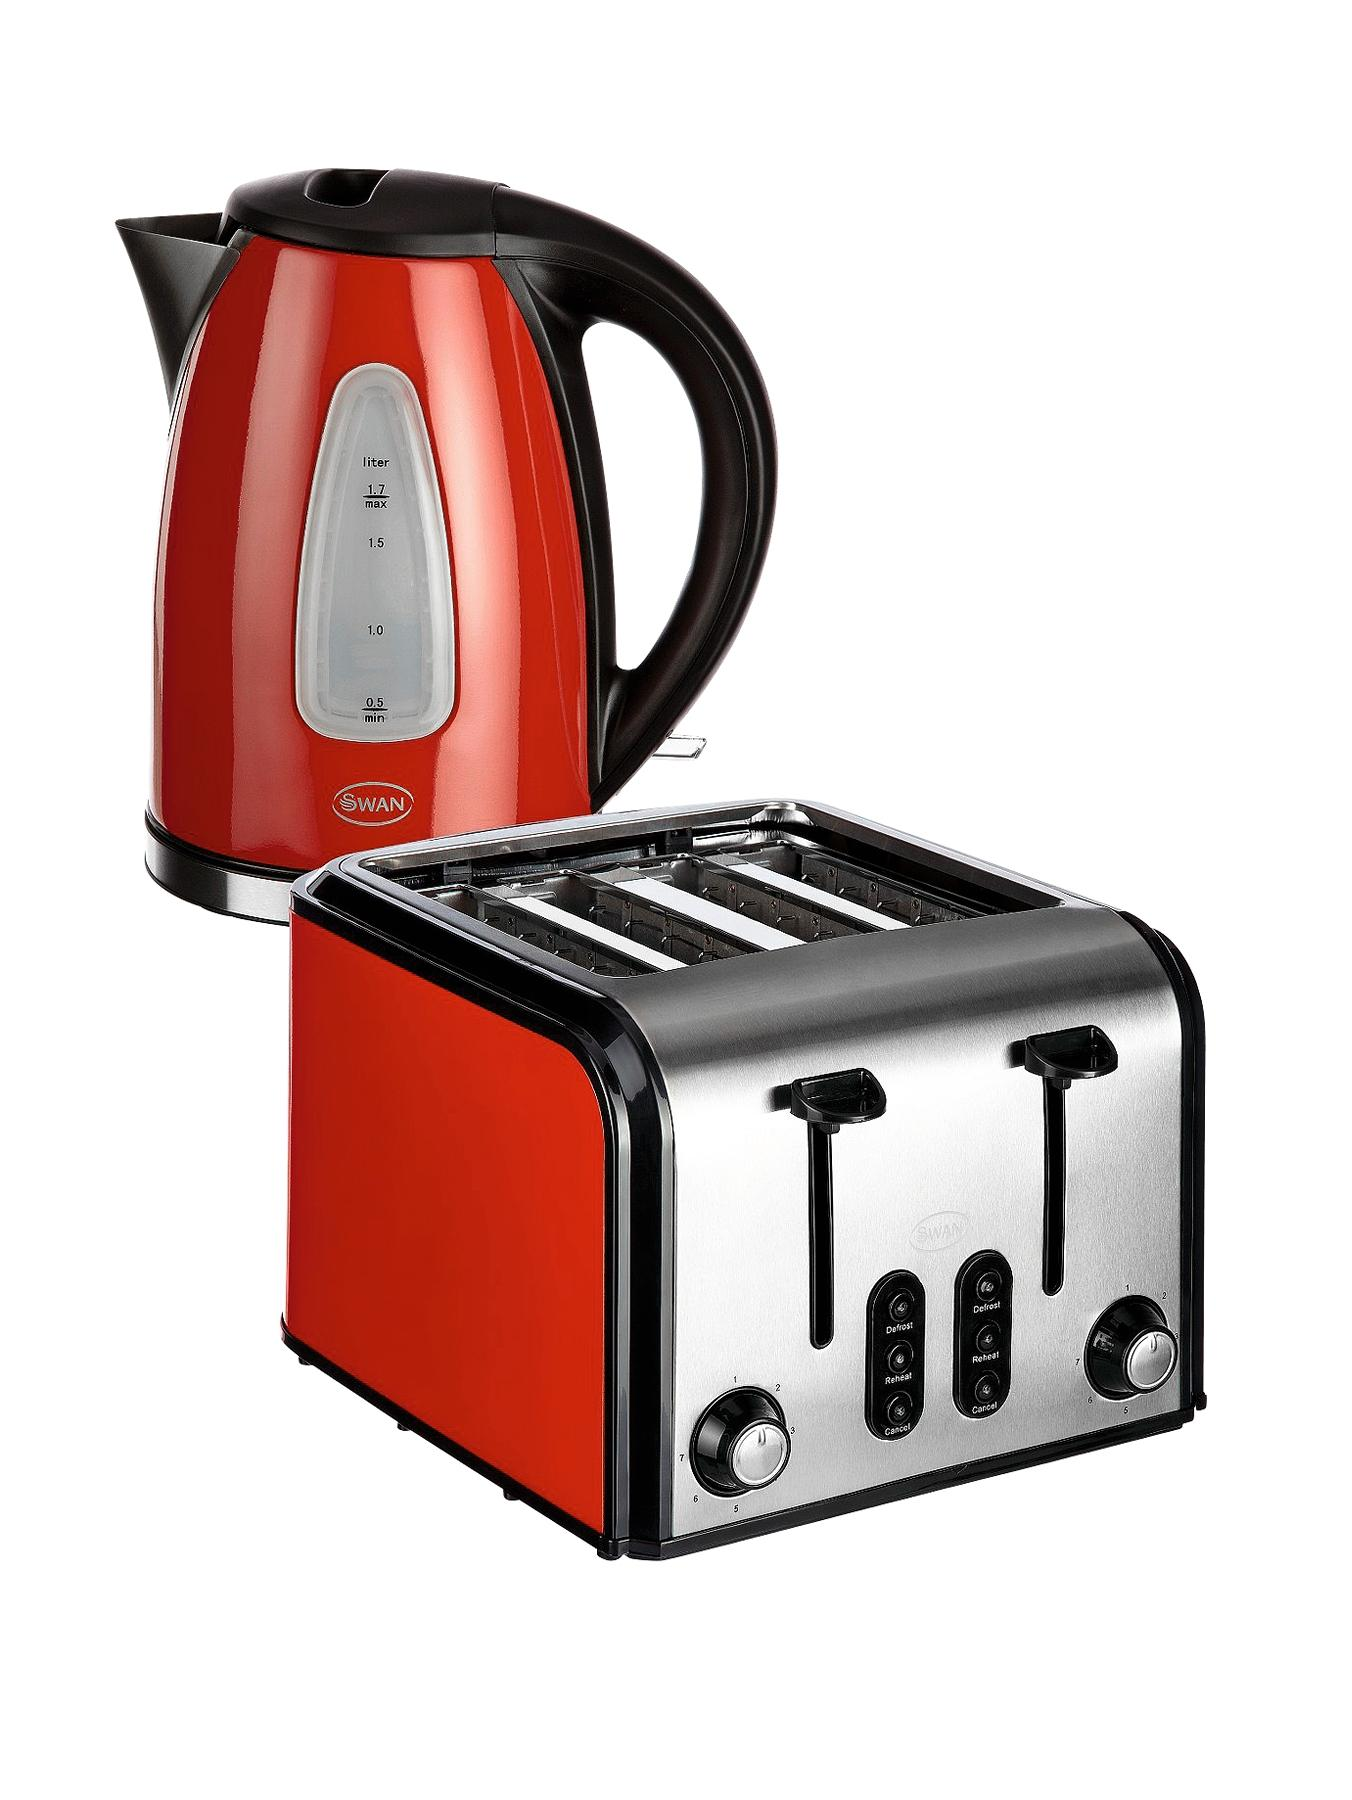 SK13110R/ST70100R Fastboil Kettle and 4 Slice Toaster Pack - Red